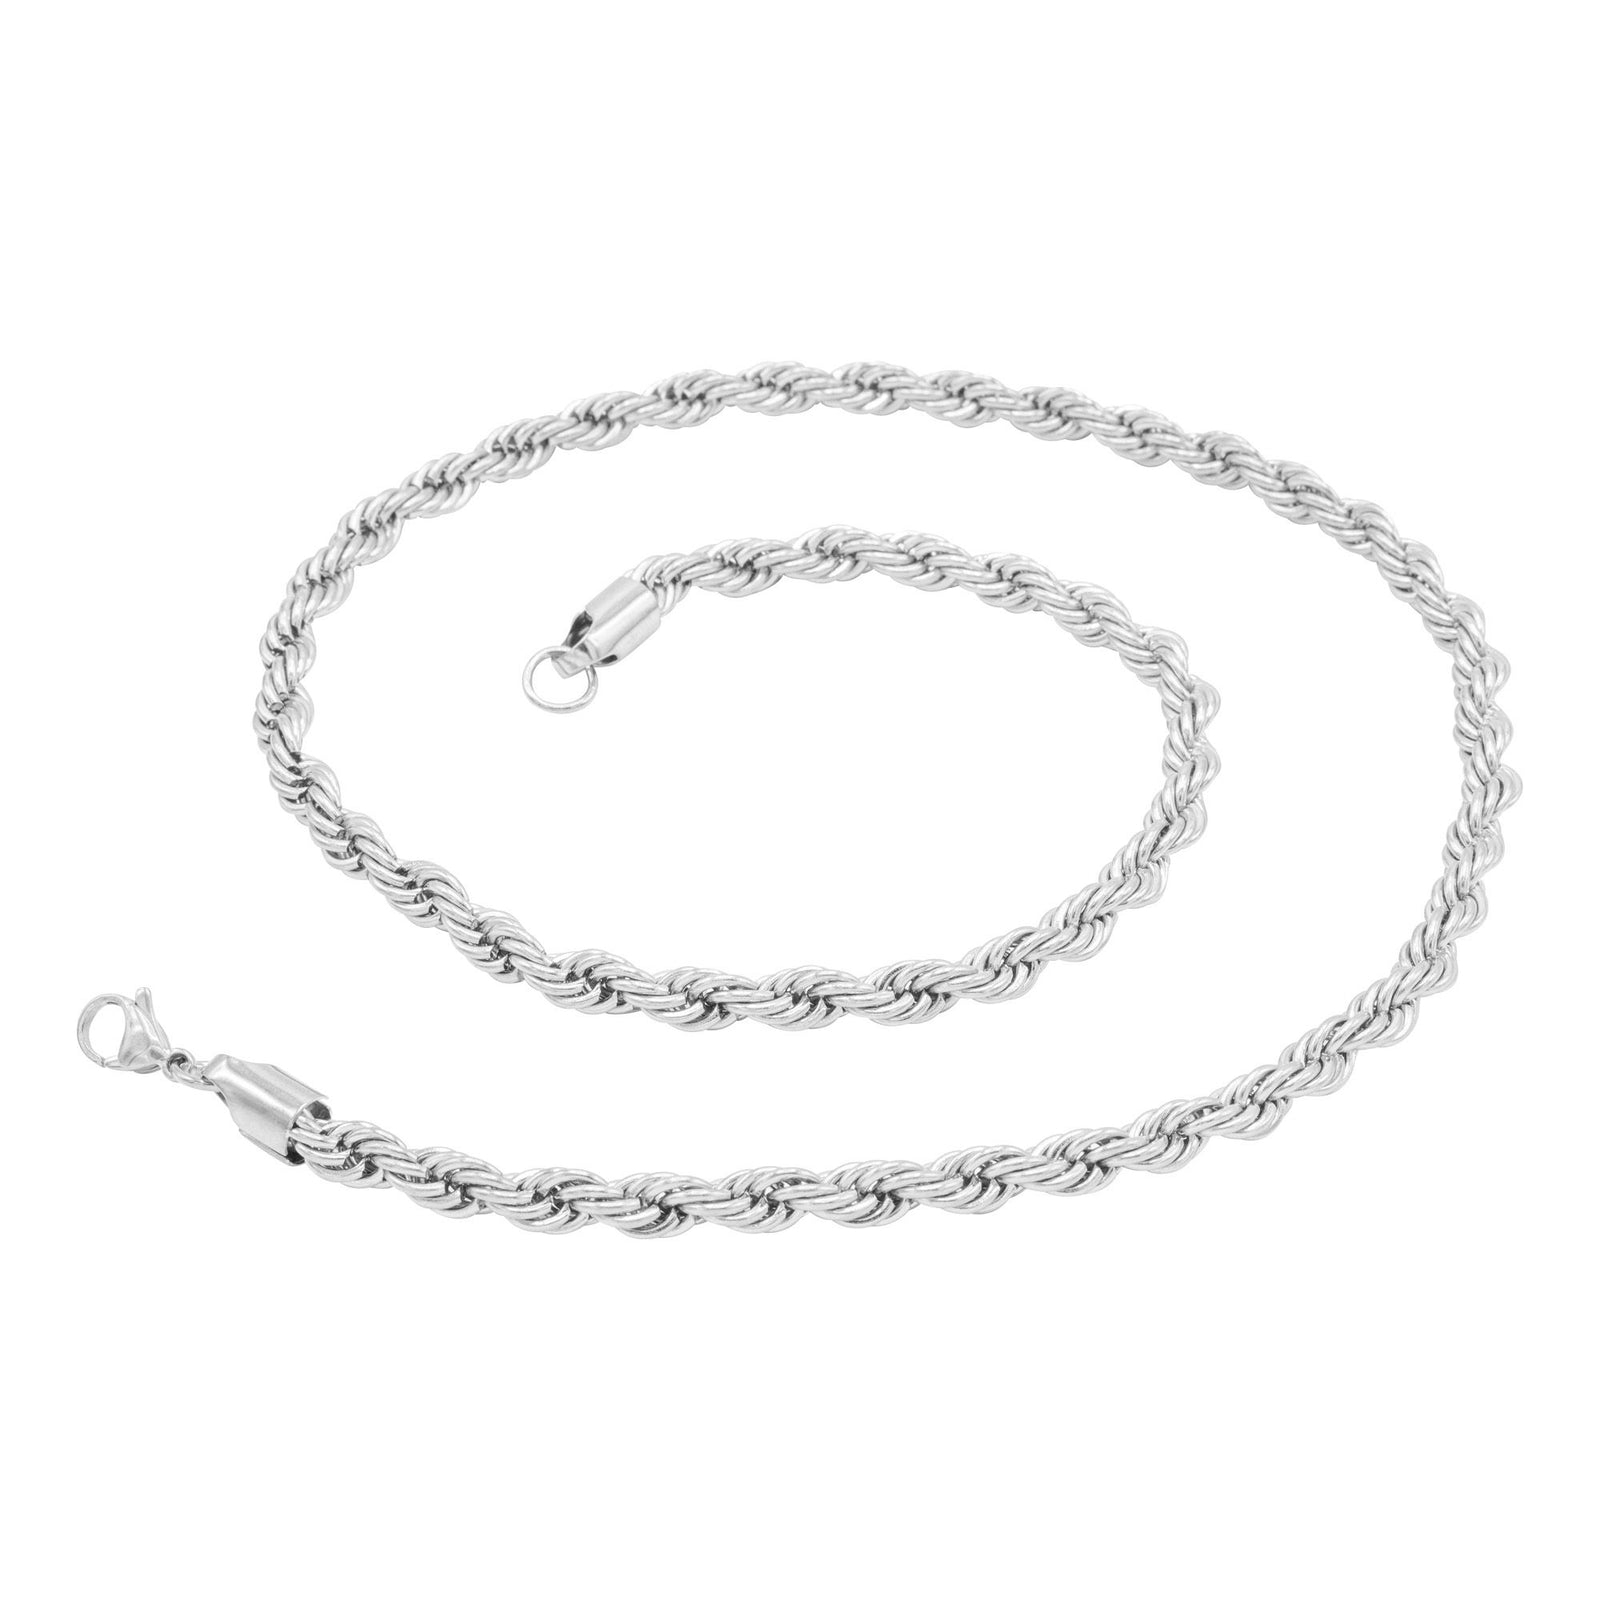 "Rope Chain Necklace Silver Stainless Steel Twisted Link Fashion Jewelry for Men 18"" 20"" 24"" 30"" Length 